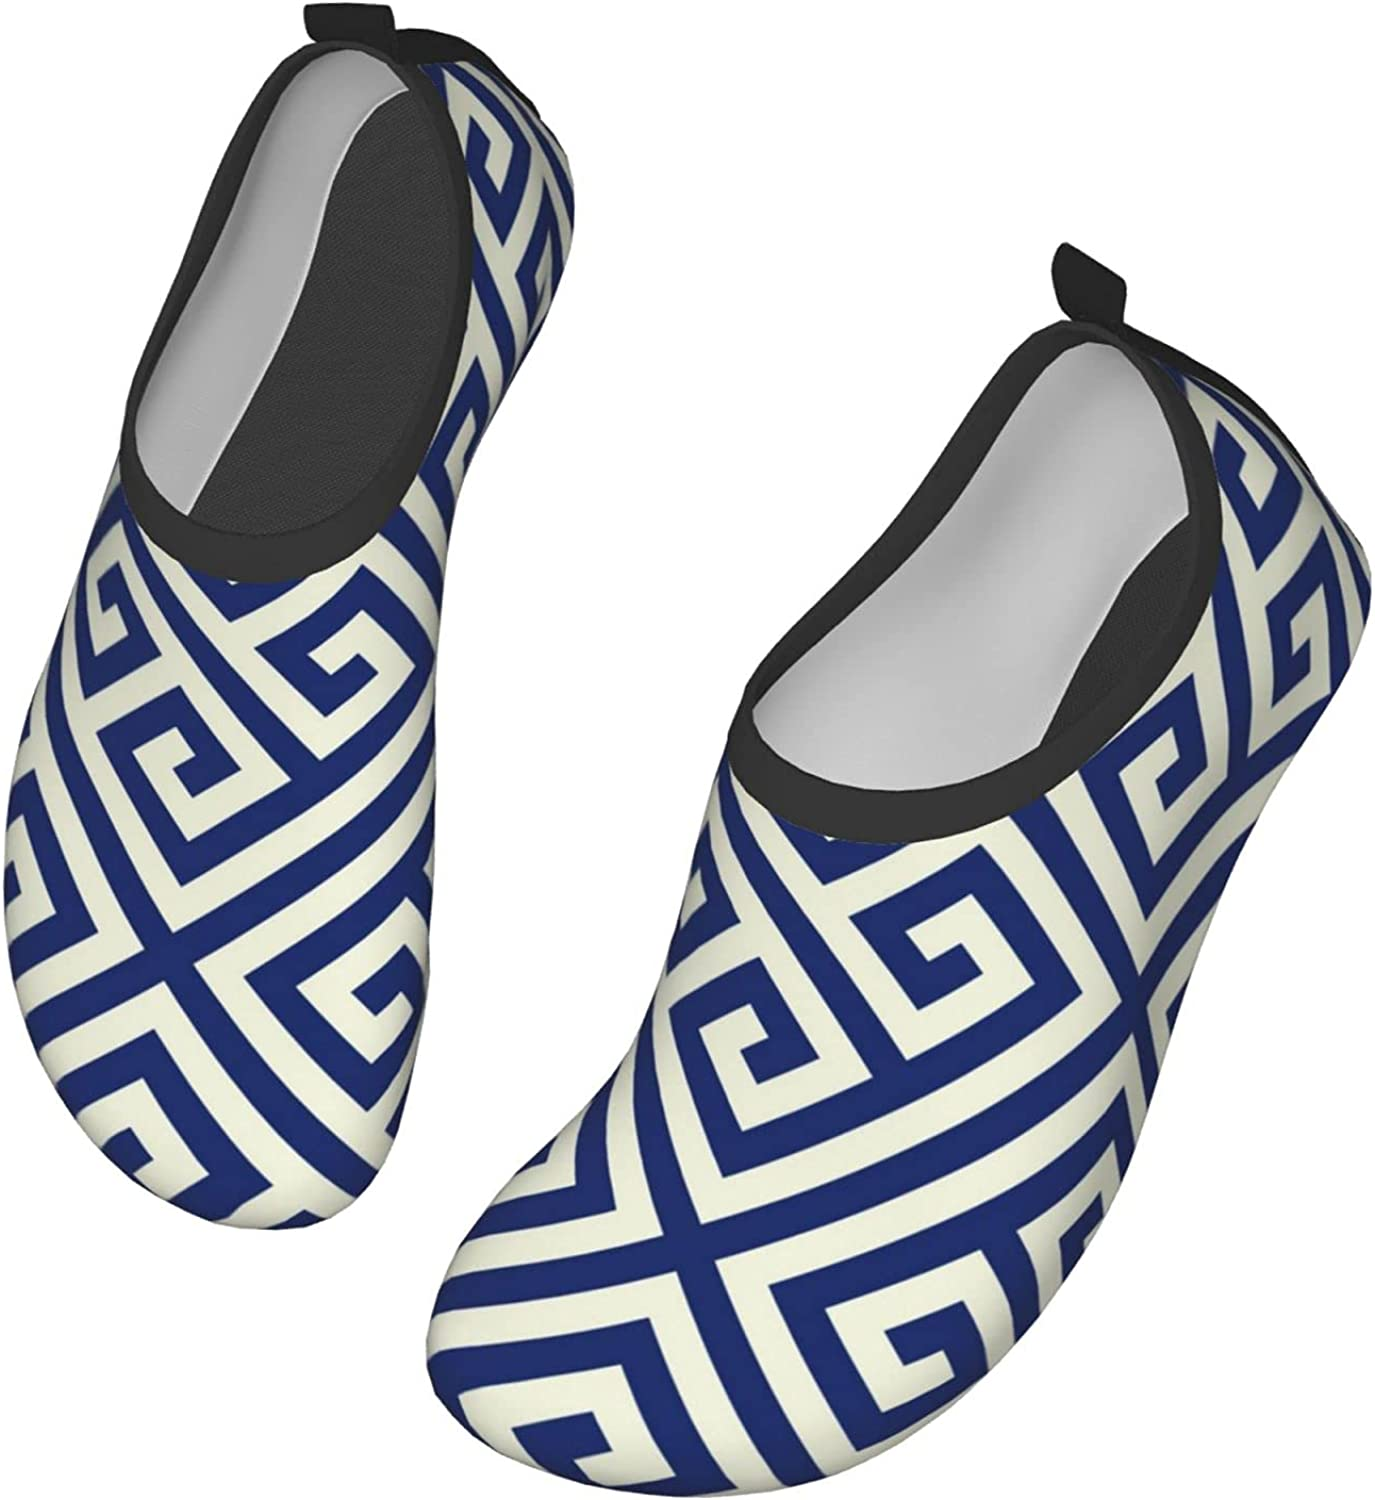 DISGOWONG Porcelain Indigo Blue and White Diagonal Ancient Greek Abstract Geometric Pattern Water Shoes Beach Swim Sports Quick-Dry Aqua Yoga Socks for Women and Men Outdoor Beach Pool Shoes 13 inch